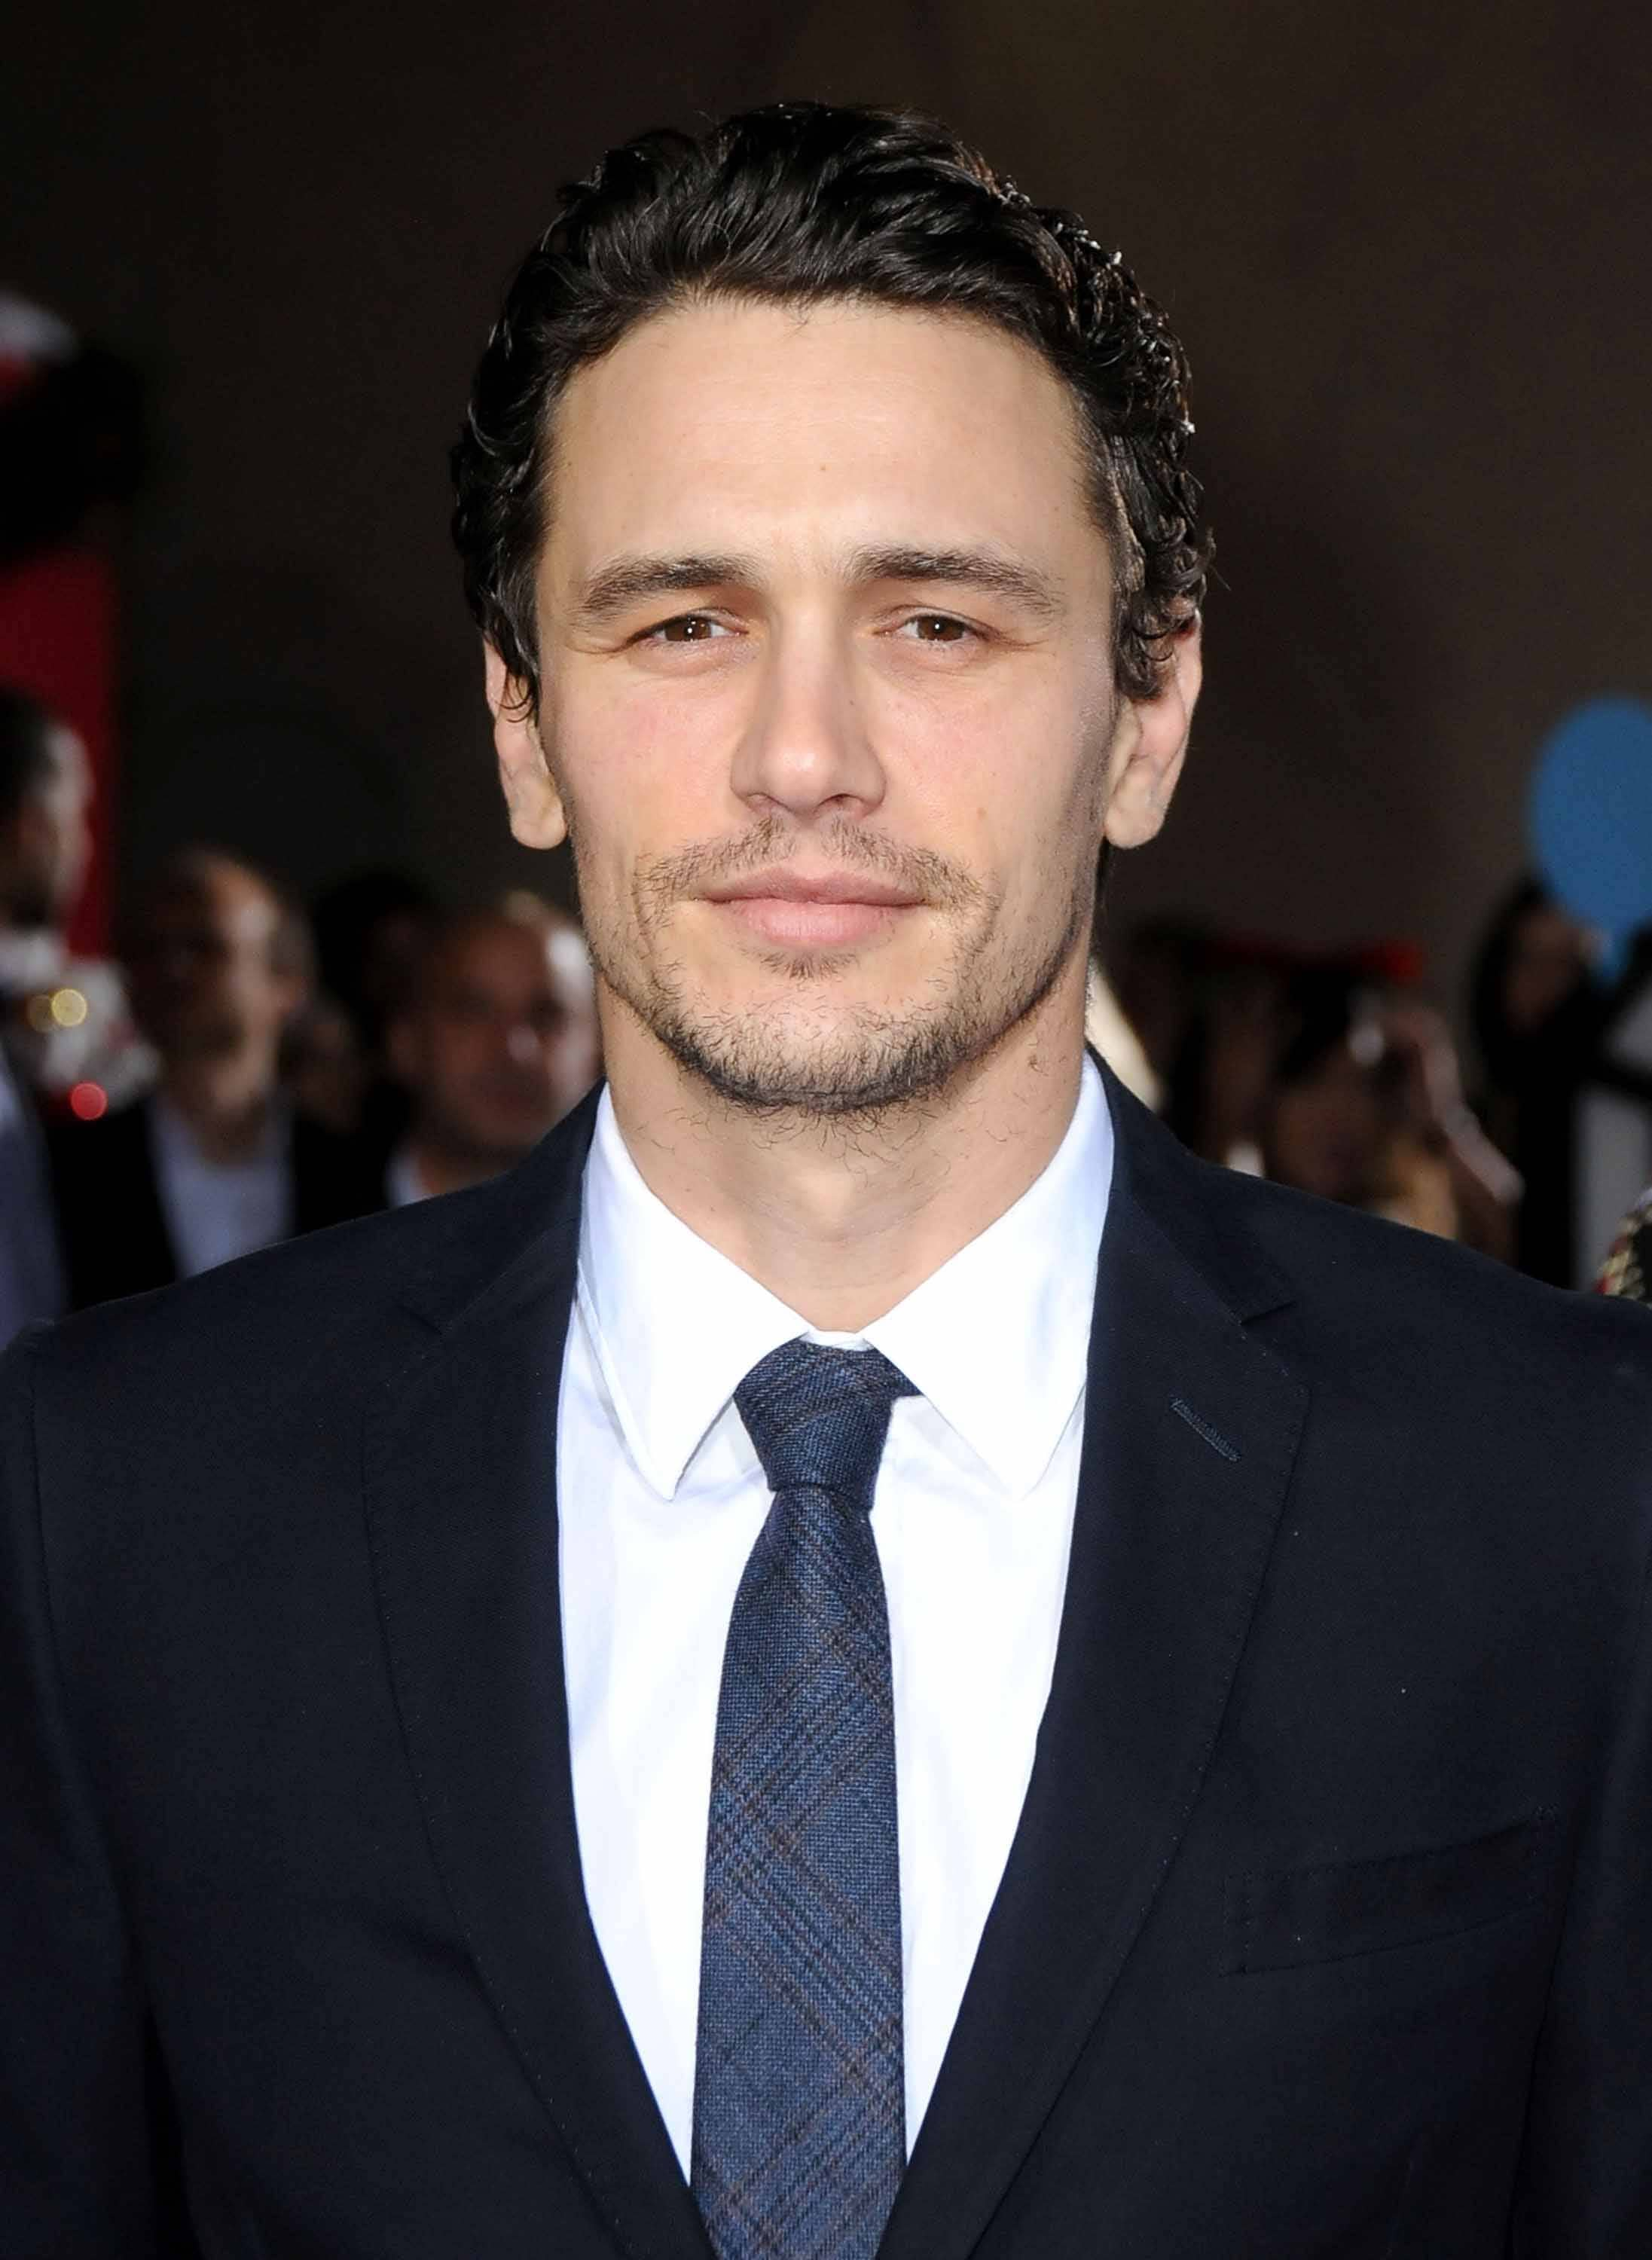 Curly hair: Men pulling it off - James Franco. Credit: Getty Images